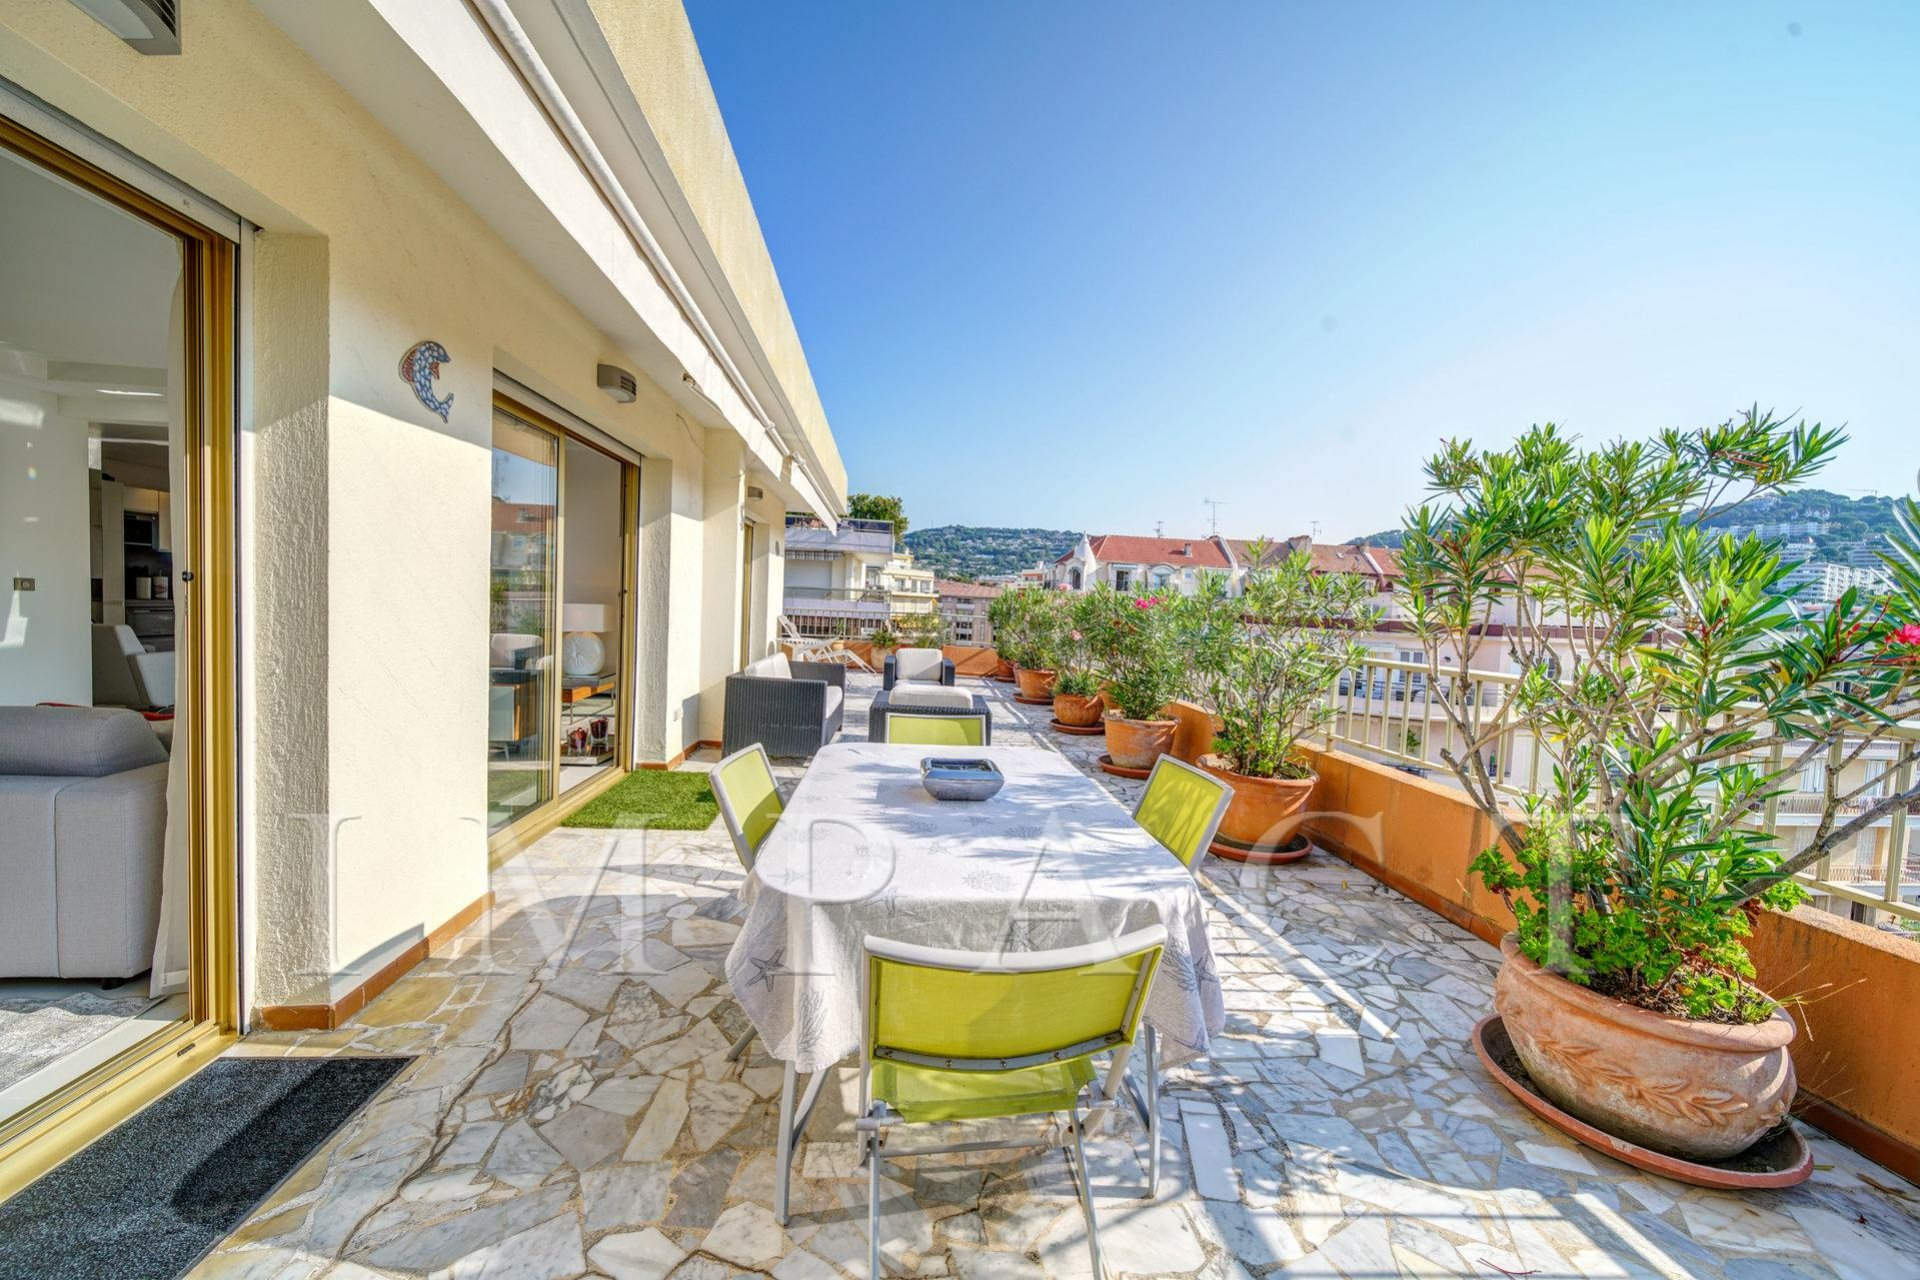 Apartment 1 bedroom for rent, near Croisette, Cannes